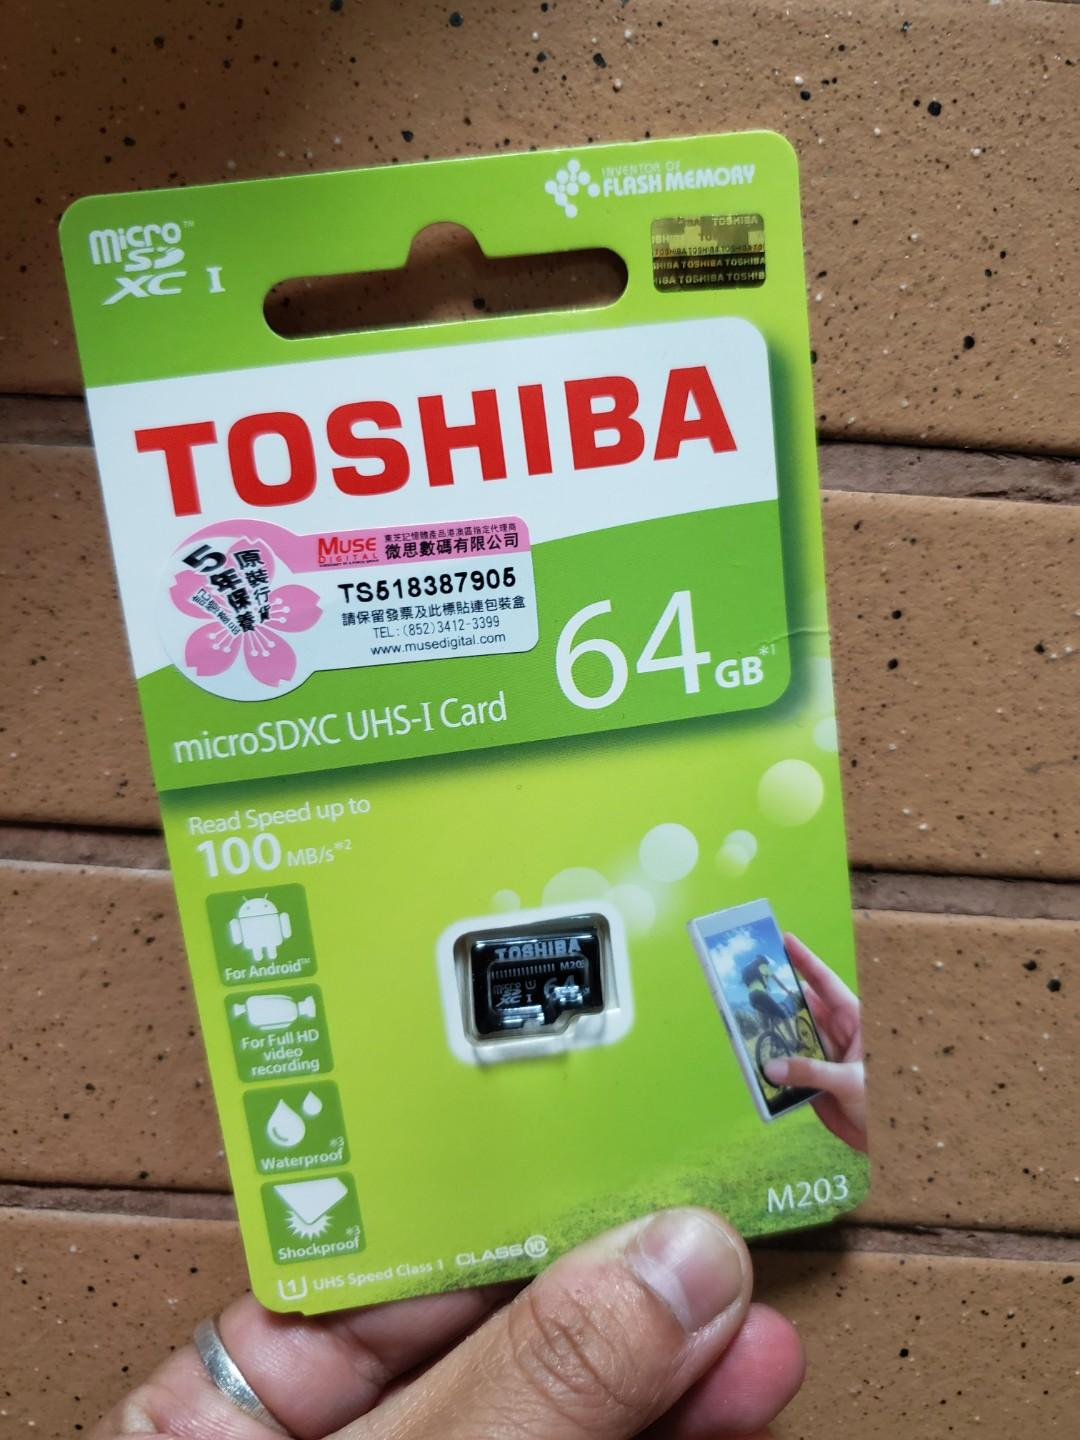 Toshiba 64GB SD card